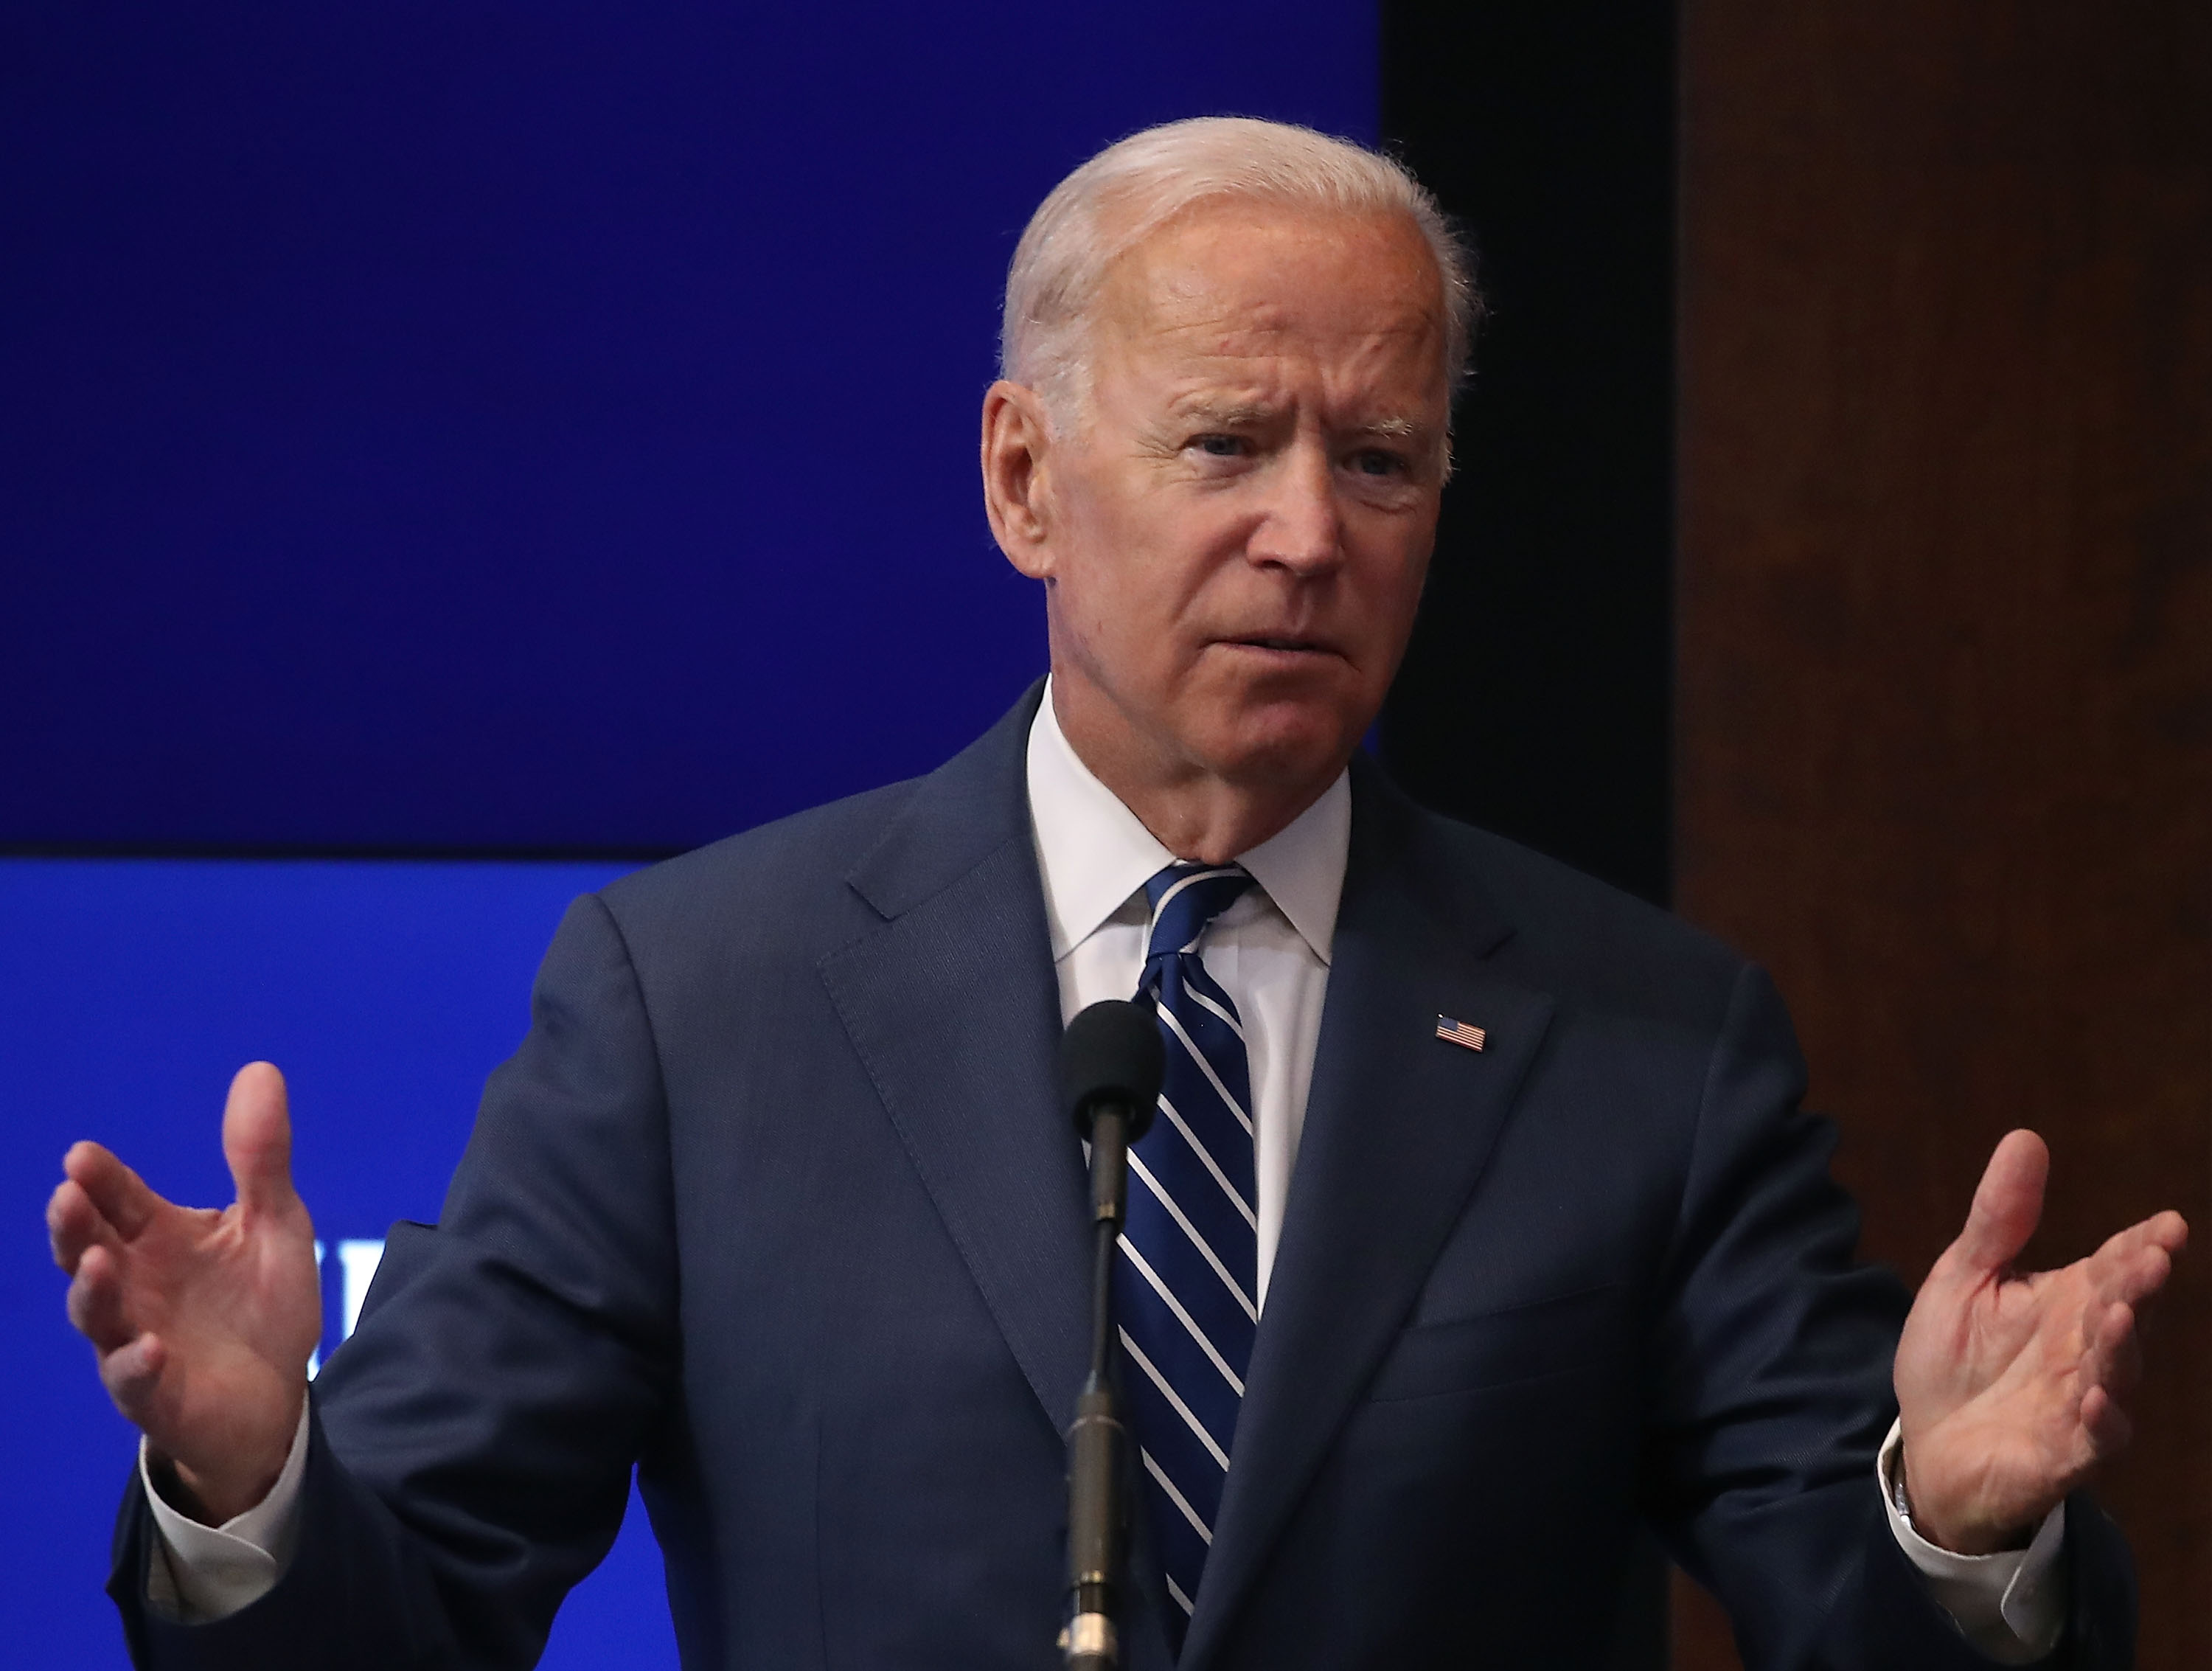 Former Vice President Joe Biden Trumps Family Separation Policy Is